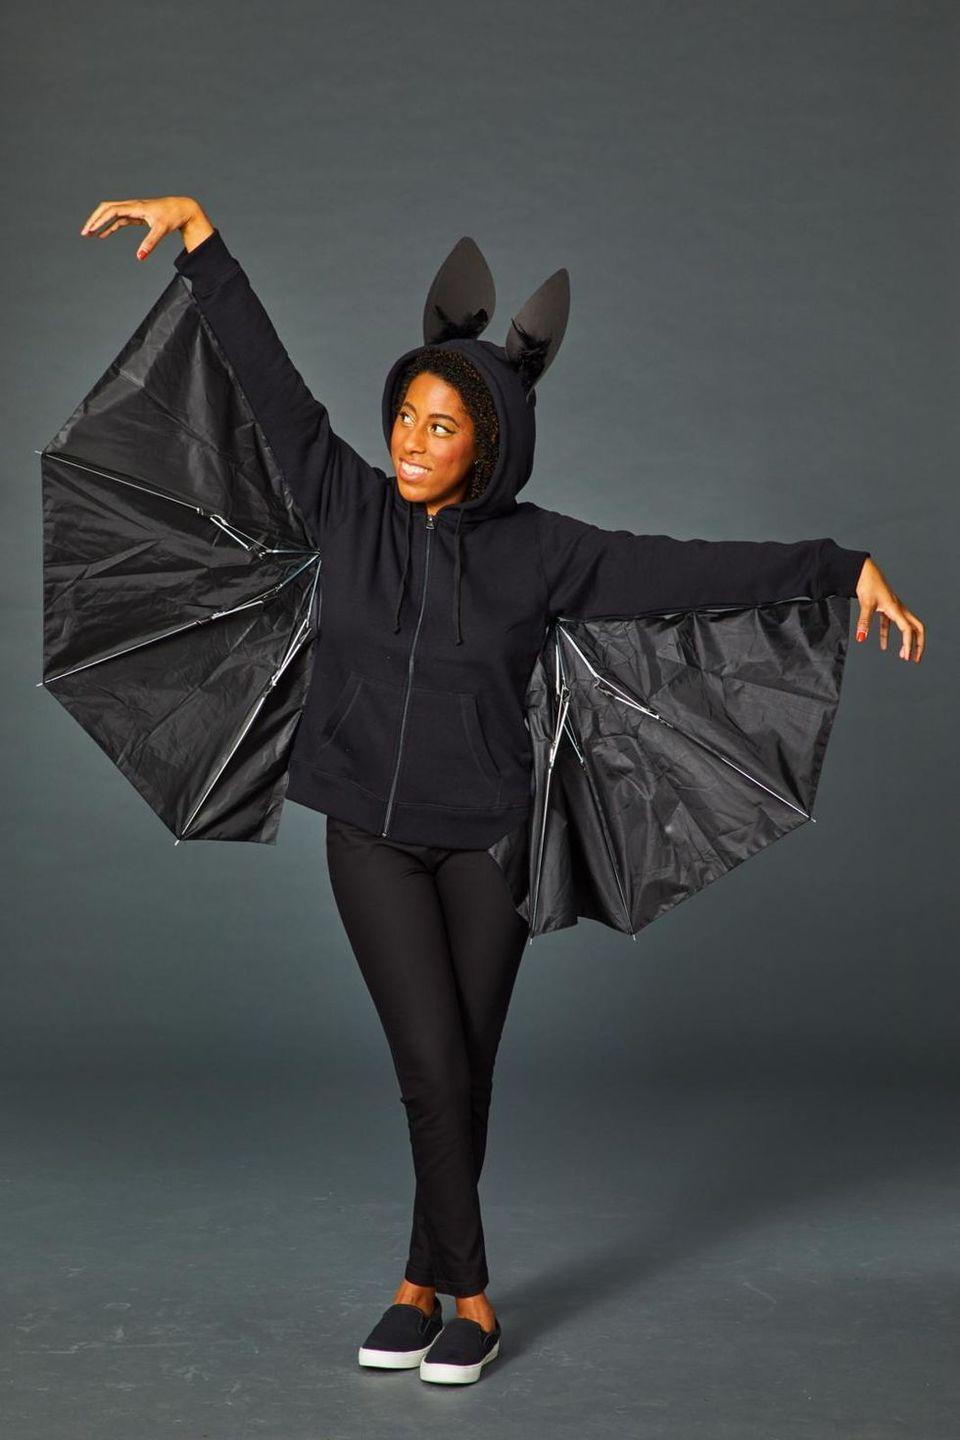 """<p>Give new life to a broken umbrella with this clever costume. To make, cut that broken umbrella in half and use black safety pins or hot glue to attach it to the arms of a black hoodie. Fasten the hinges of the umbrella pieces with black electrical tape, so you can open your wings to get the full bat effect. Then finish off your look with black foam ears dotted with black feathers.</p><p><a class=""""link rapid-noclick-resp"""" href=""""https://www.amazon.com/Hanes-Womens-Jersey-Hoodie-Medium/dp/B016YKIBS2?tag=syn-yahoo-20&ascsubtag=%5Bartid%7C10070.g.490%5Bsrc%7Cyahoo-us"""" rel=""""nofollow noopener"""" target=""""_blank"""" data-ylk=""""slk:SHOP BLACK HOODIES"""">SHOP BLACK HOODIES</a></p>"""